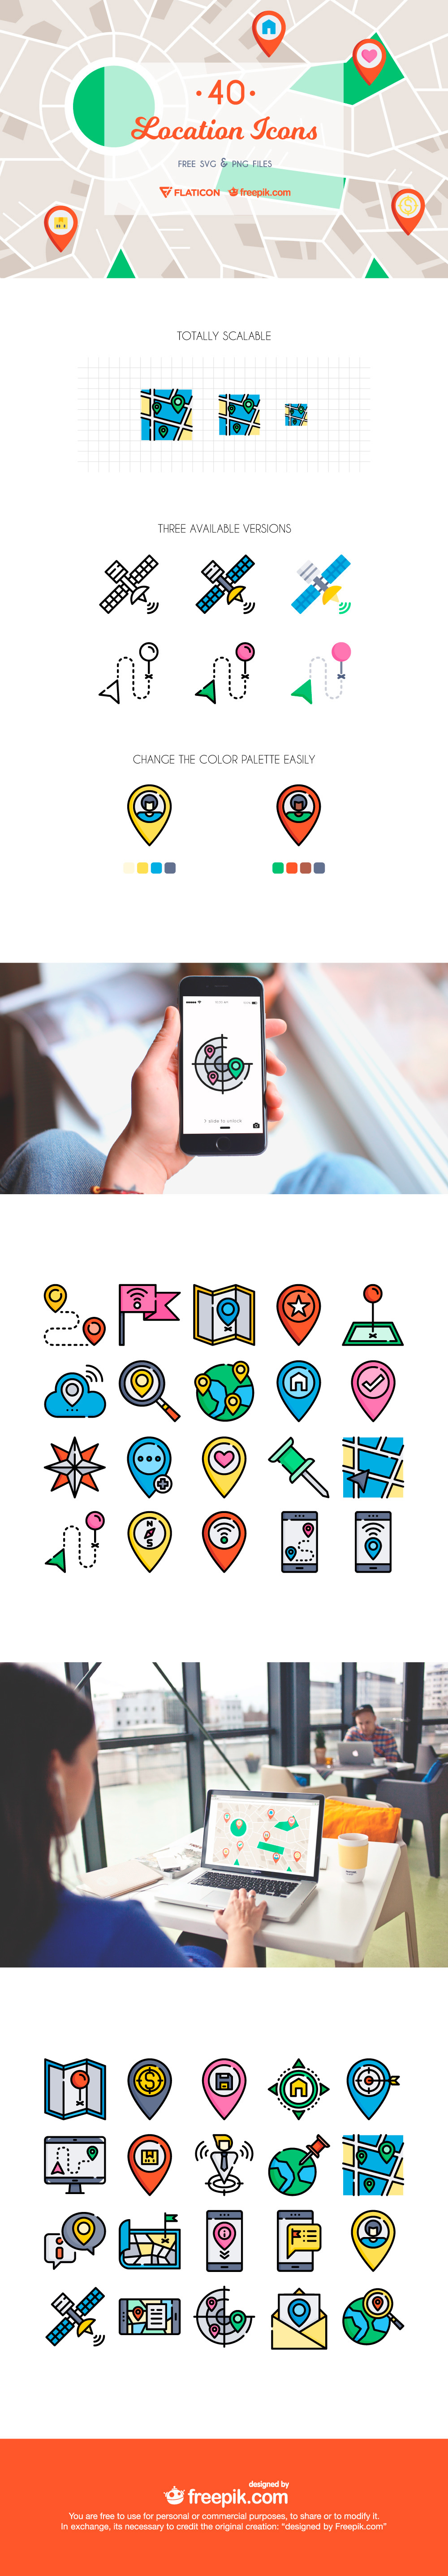 The Free Location Icon Set by Freepik